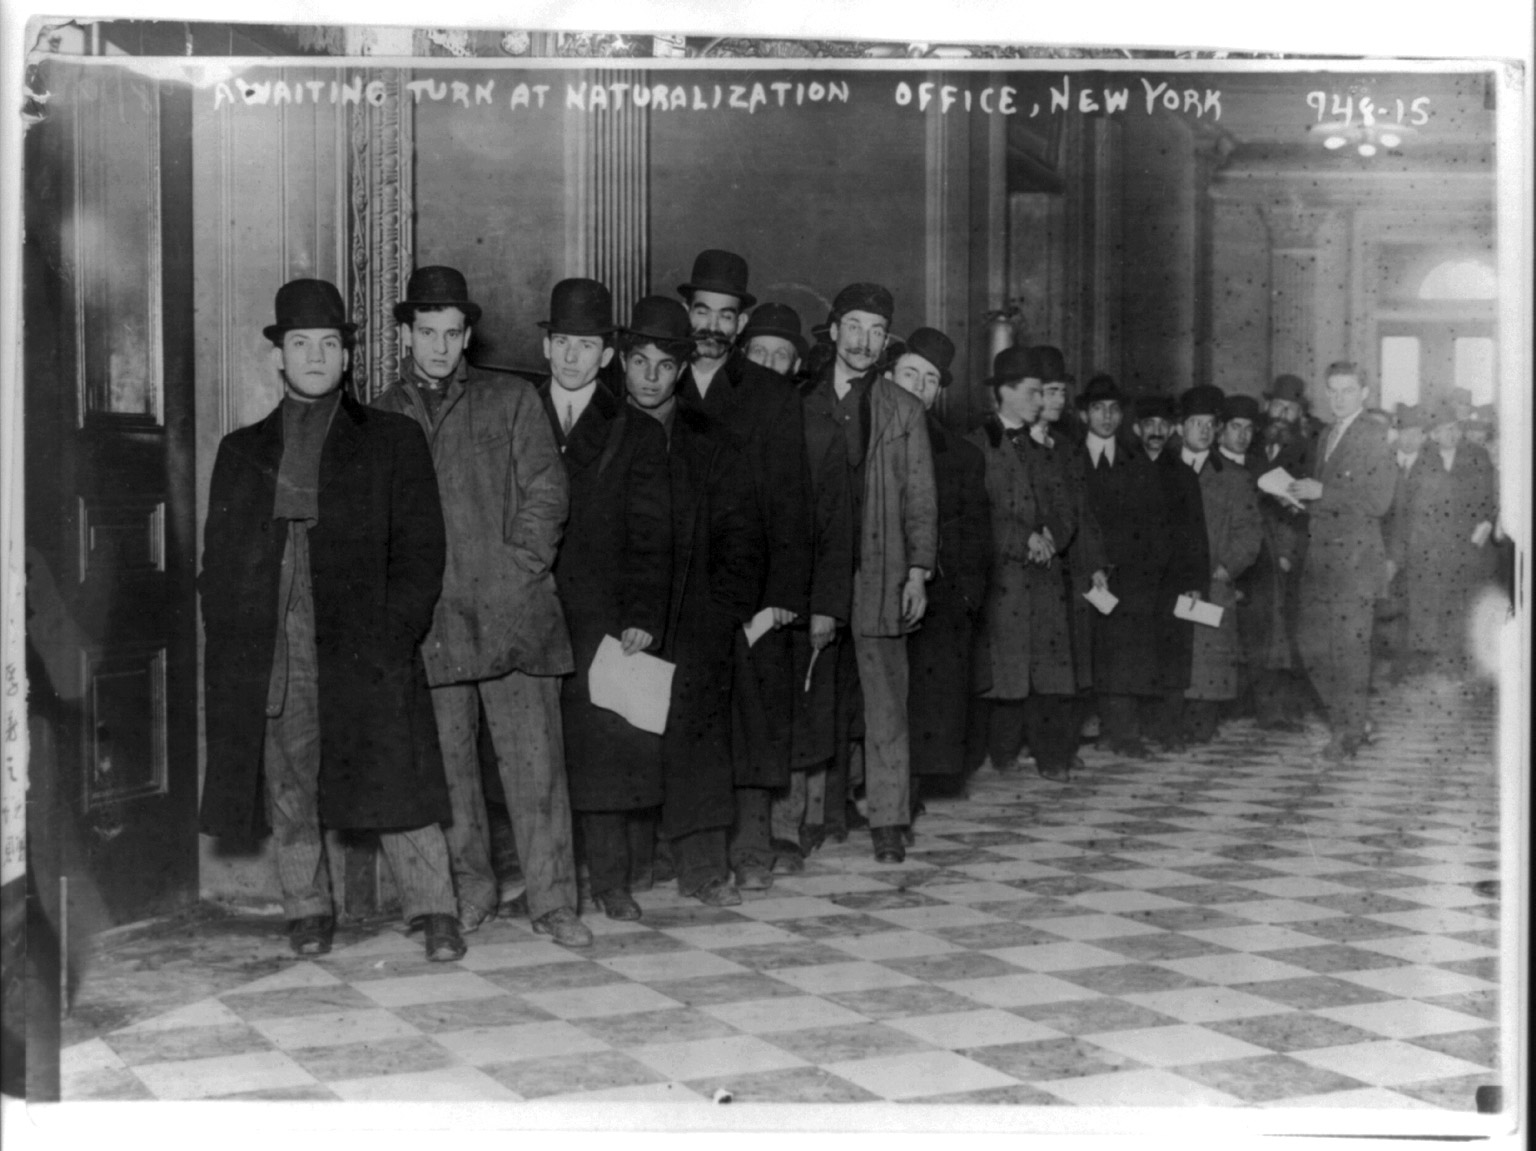 Men standing in line in corridor of naturalization office in New York City, circa 1916.